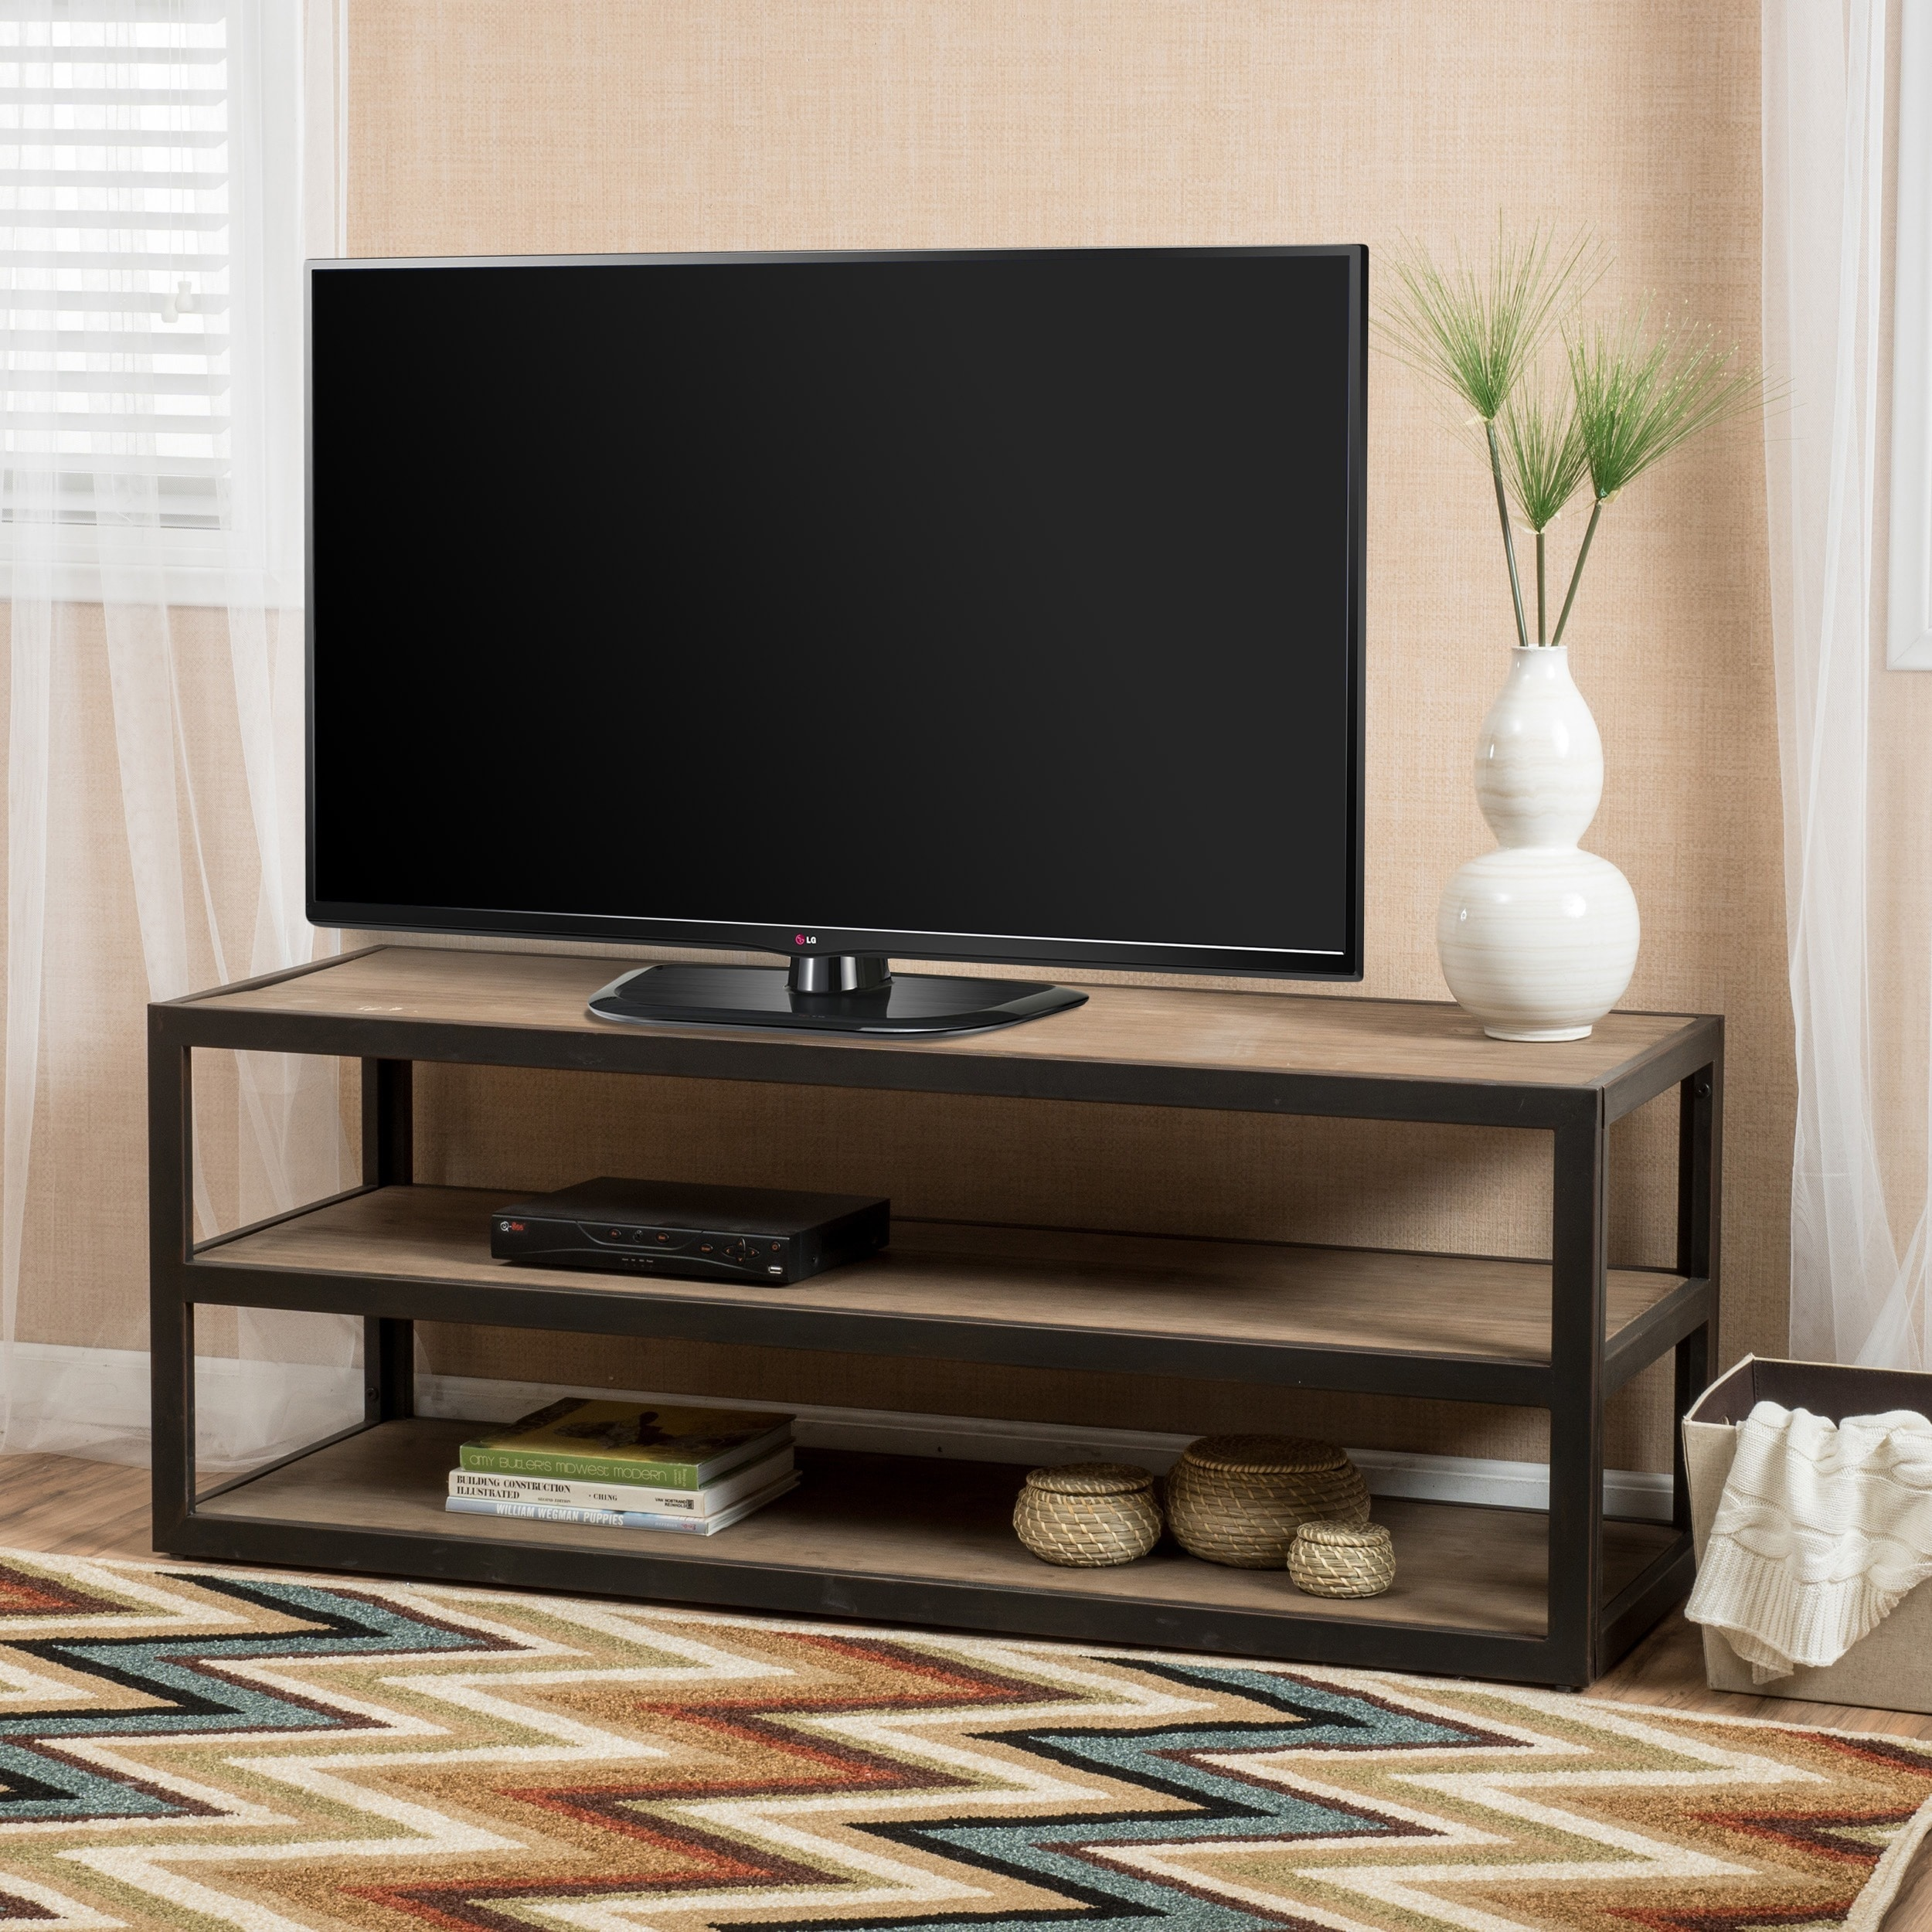 Shop perth 3 shelf industrial entertainment tv console stand with shelf by christopher knight home on sale free shipping today overstock com